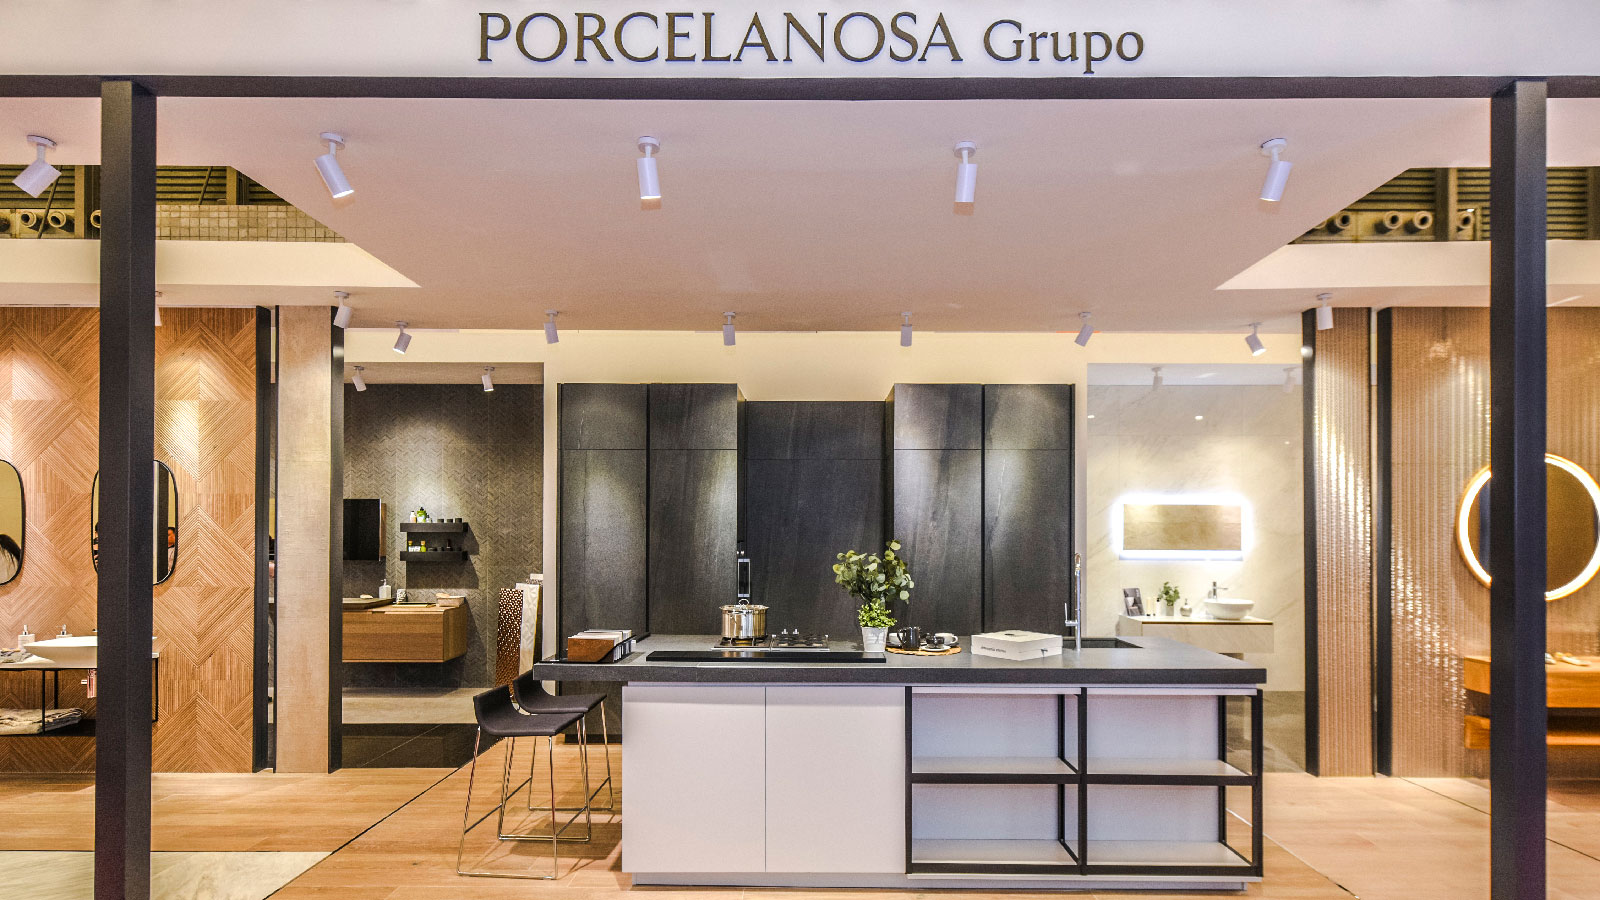 PORCELANOSA Grupo at Kitchen & Bath China 2018: the latest innovations in bathrooms and kitchens